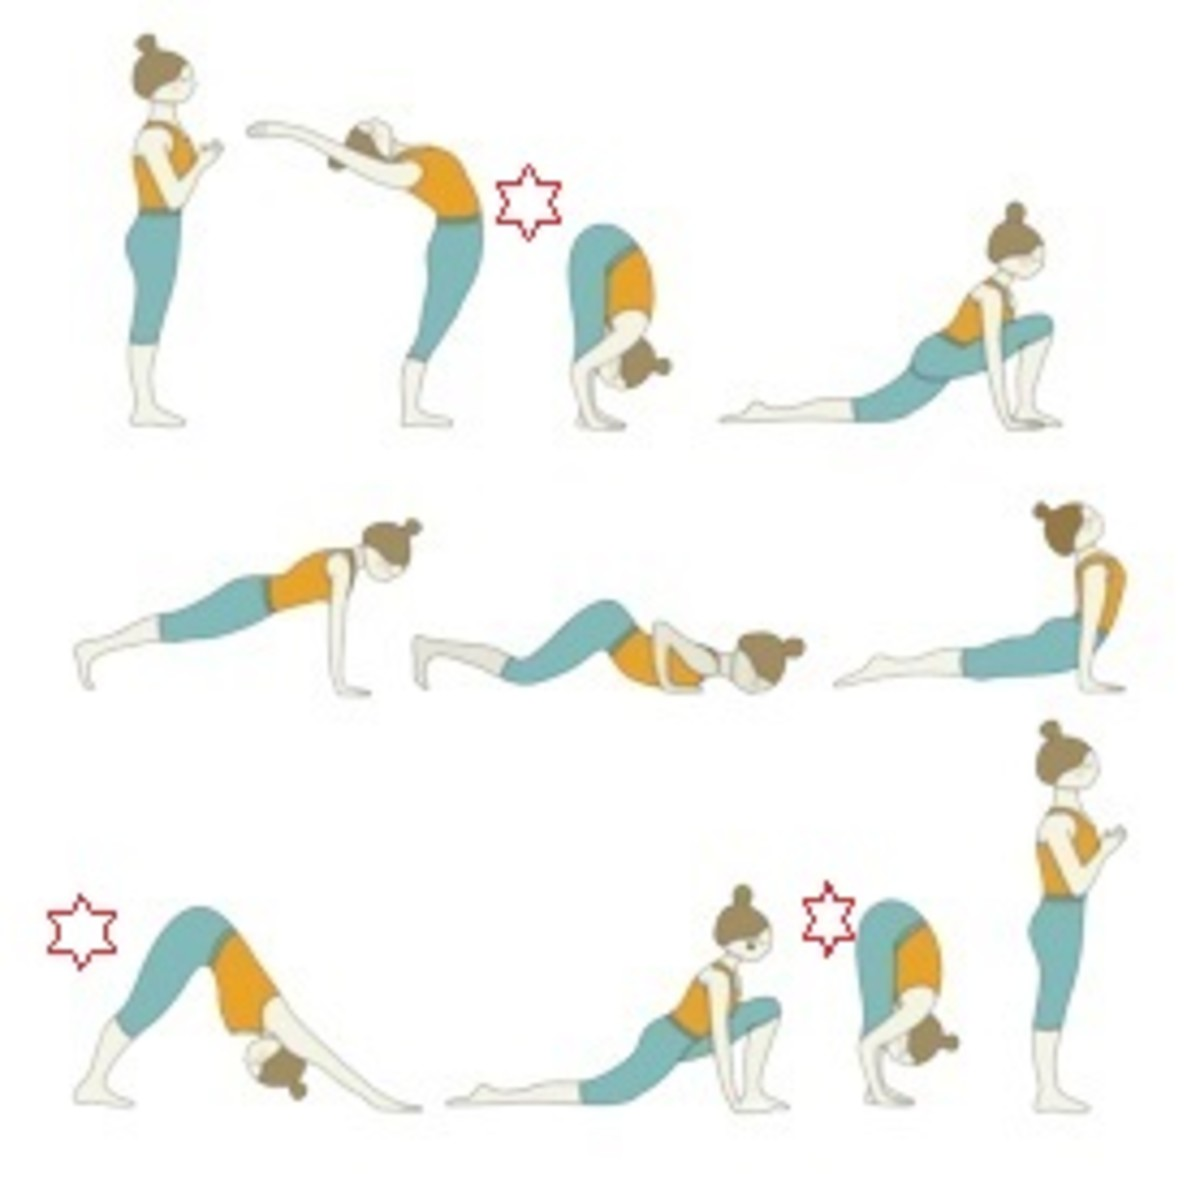 Sun Salutation sequence (see red stars).